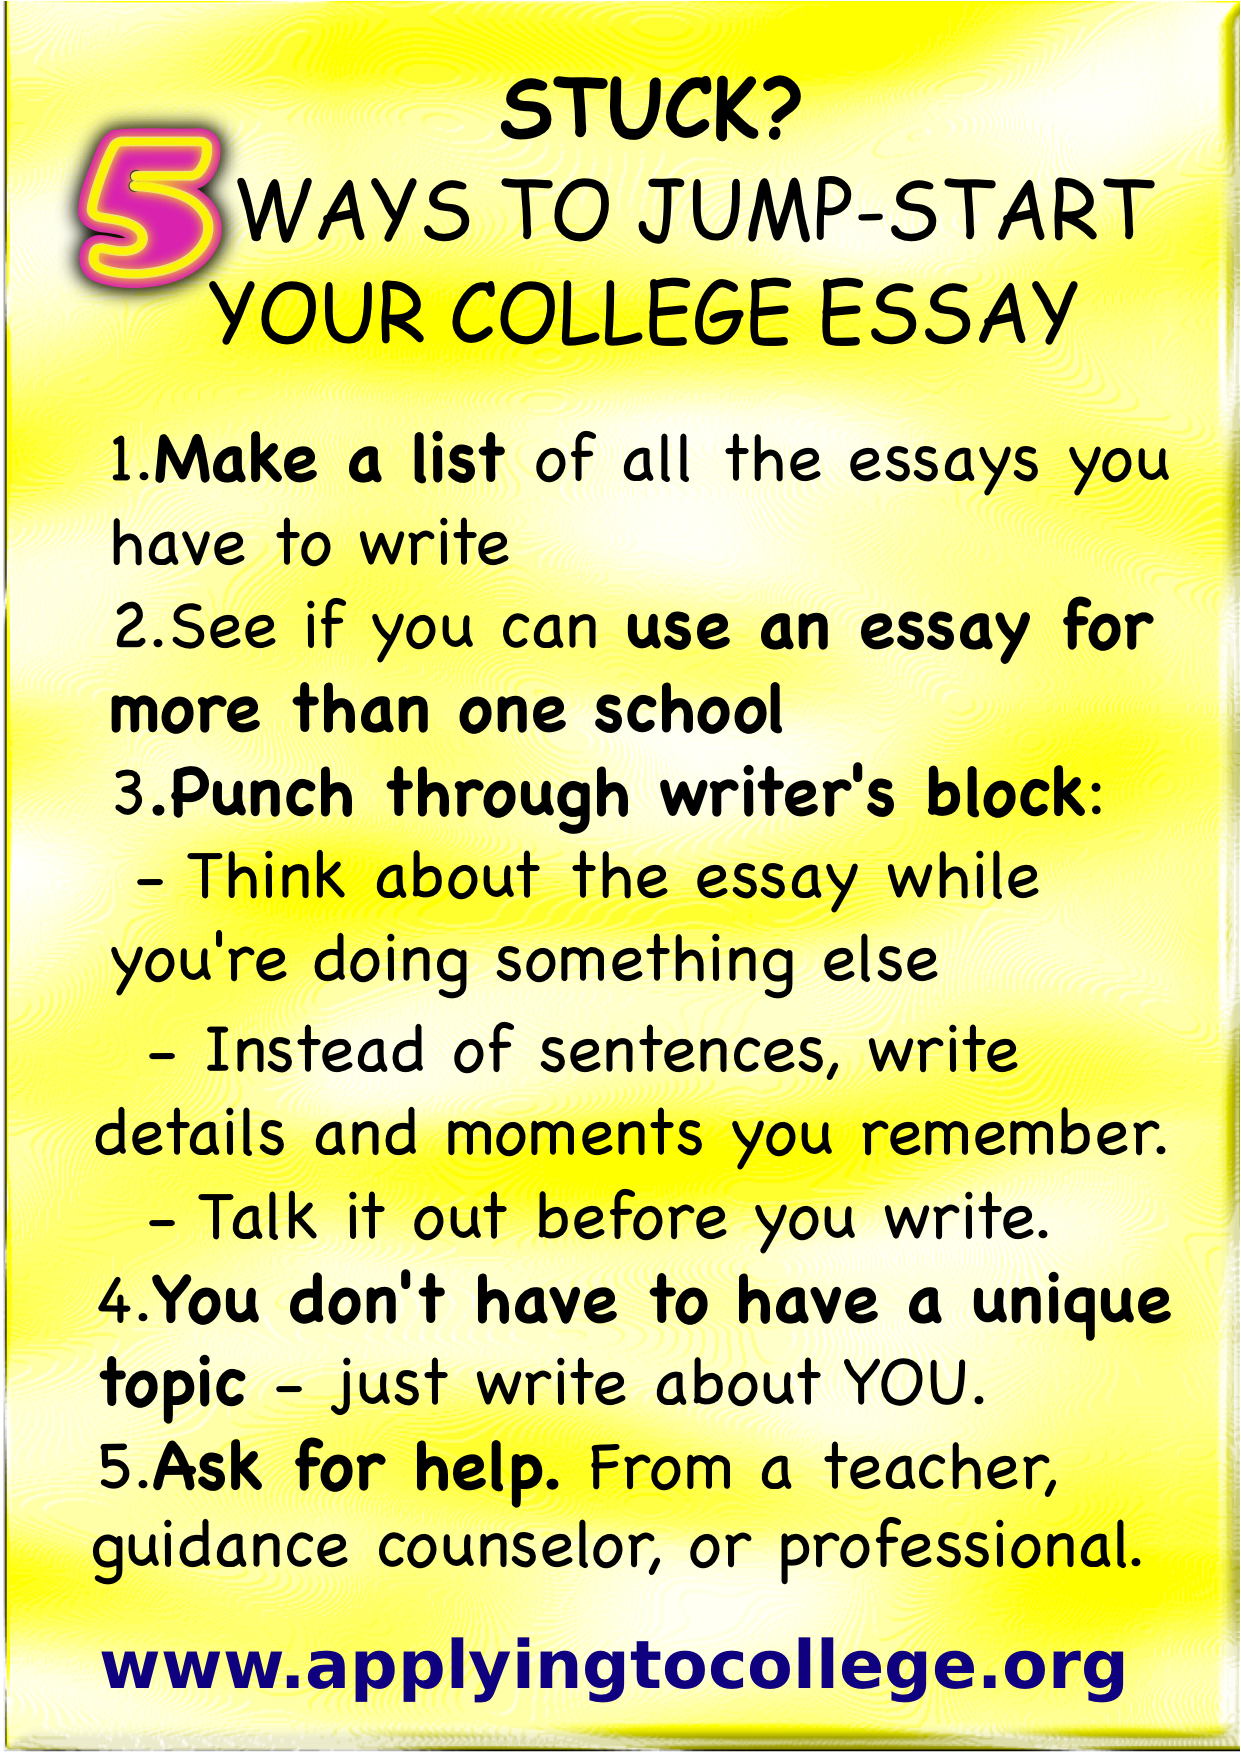 Resume CV Cover Letter  common application essay questions             Tips for Writing Your College Admissions Essay